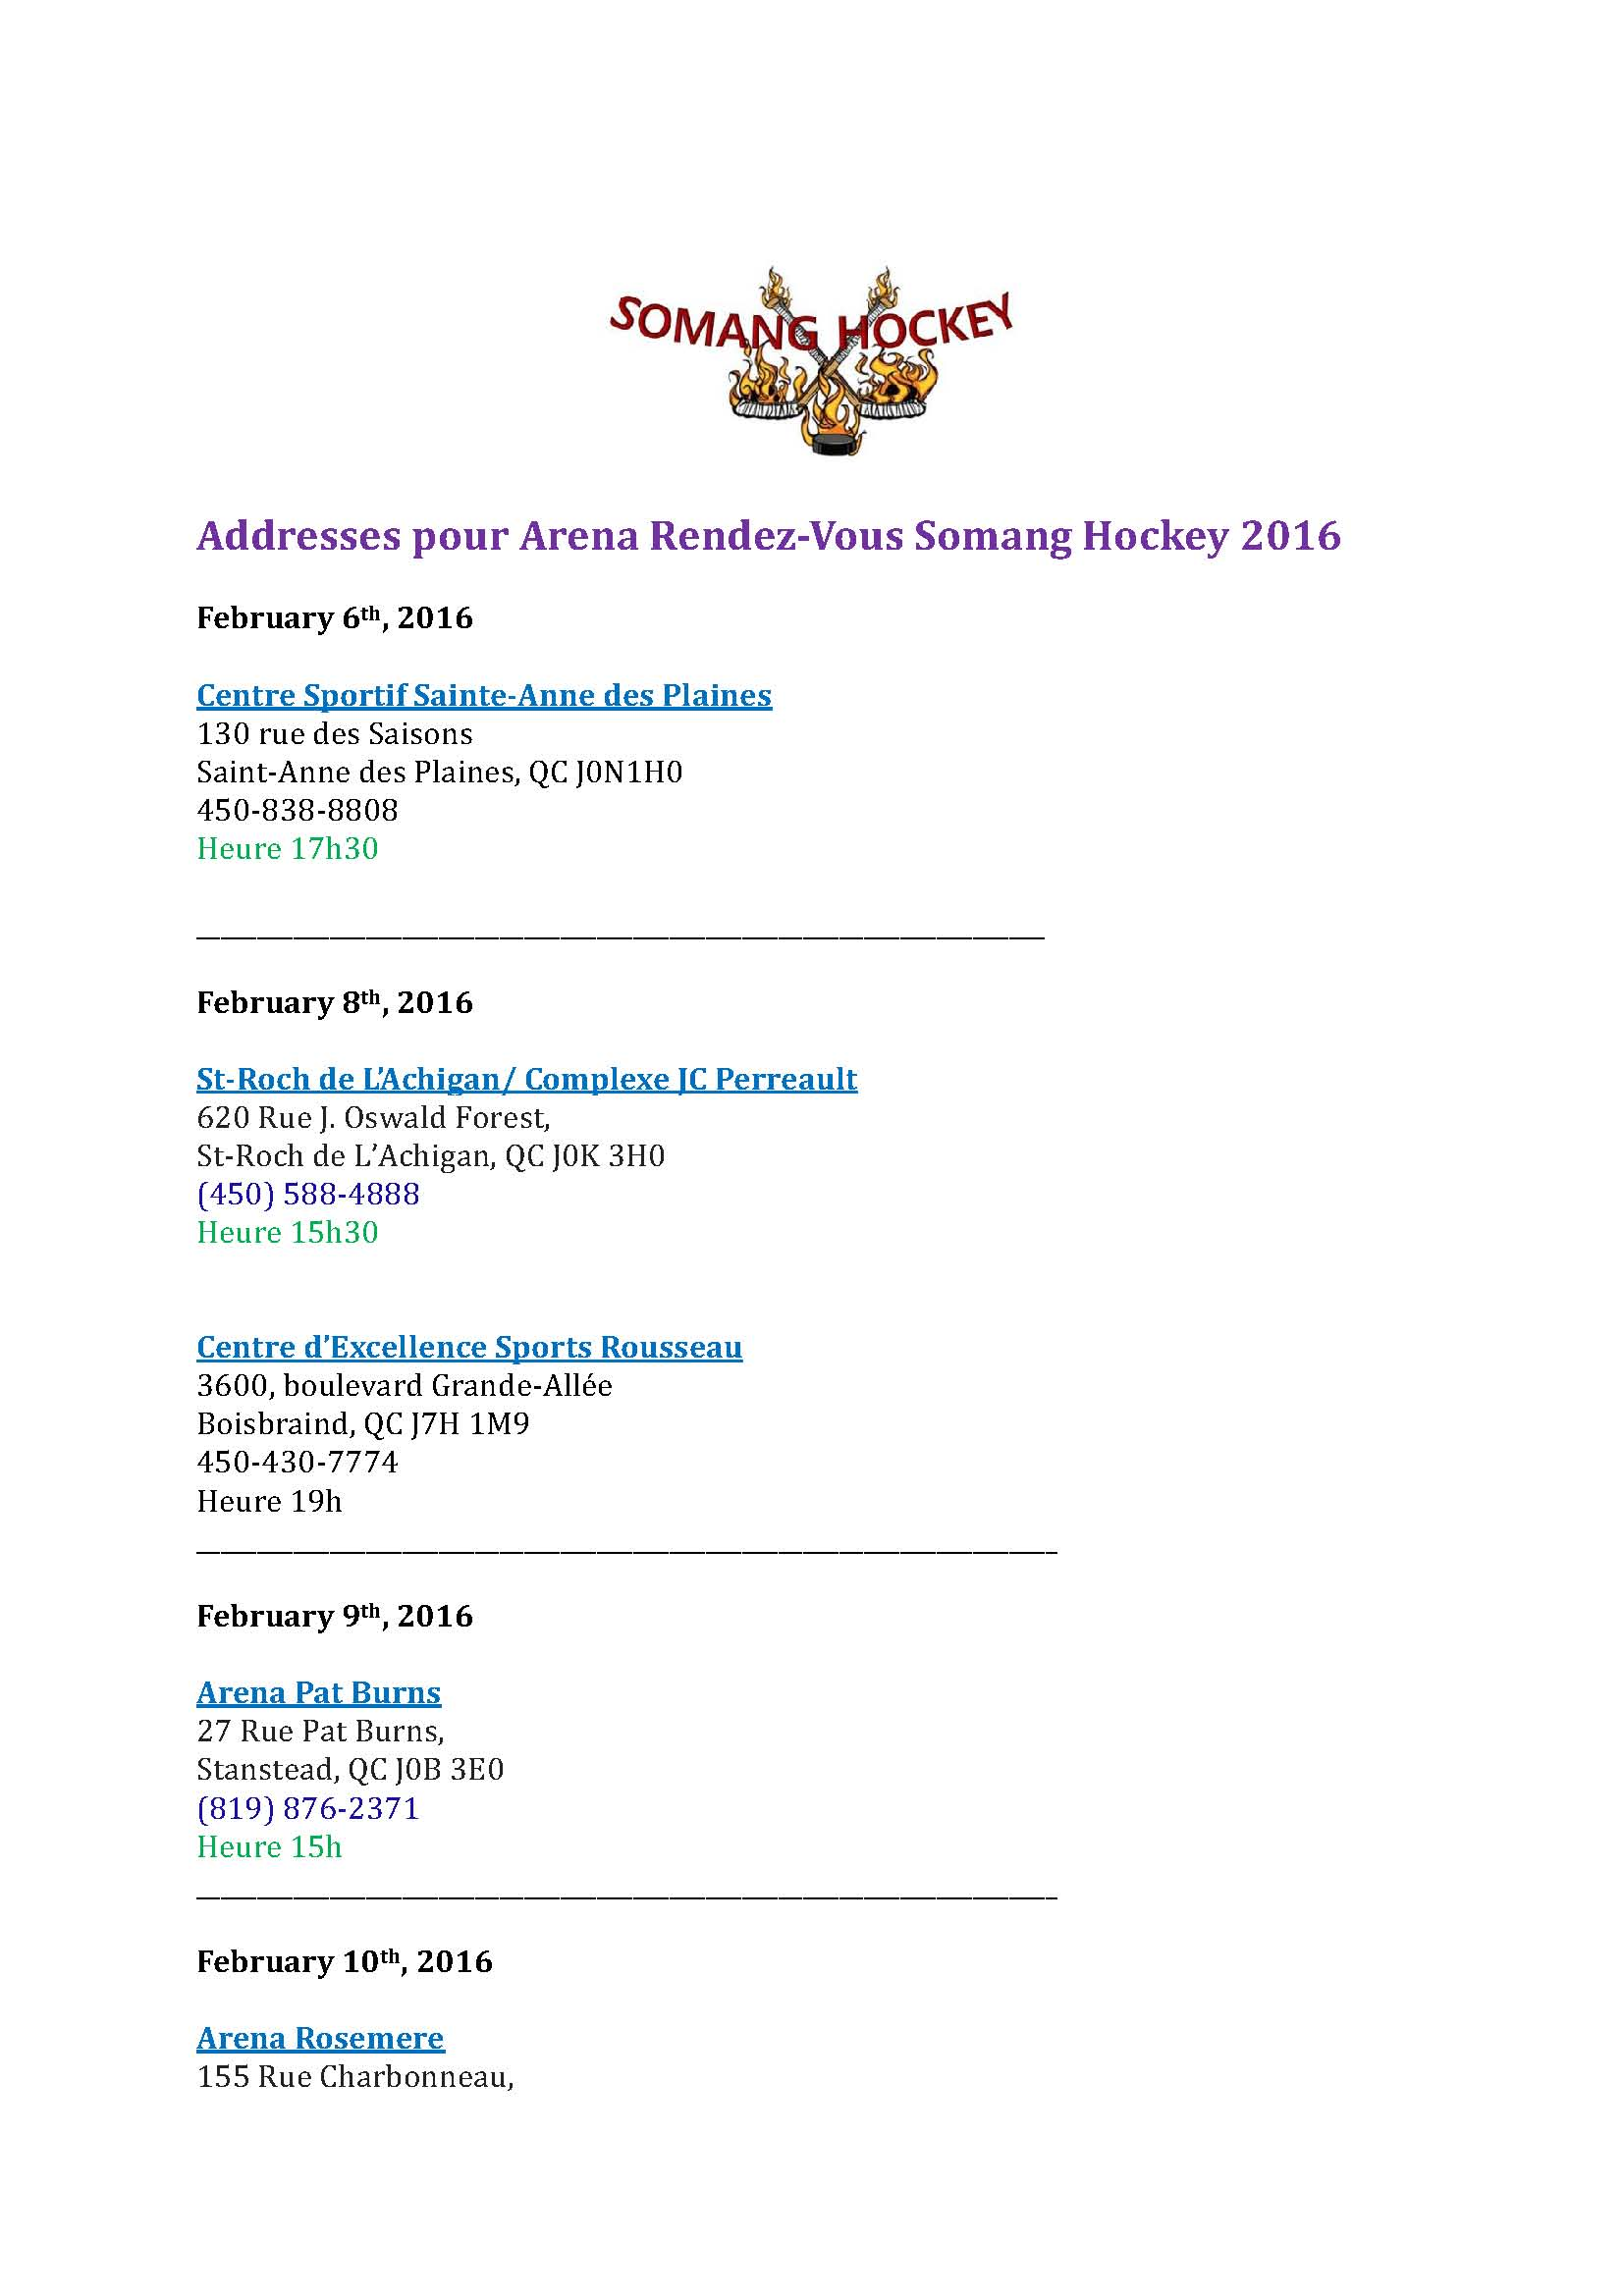 Arena Addresses for Rendez-Vous Somang Hockey 2016_Page_1